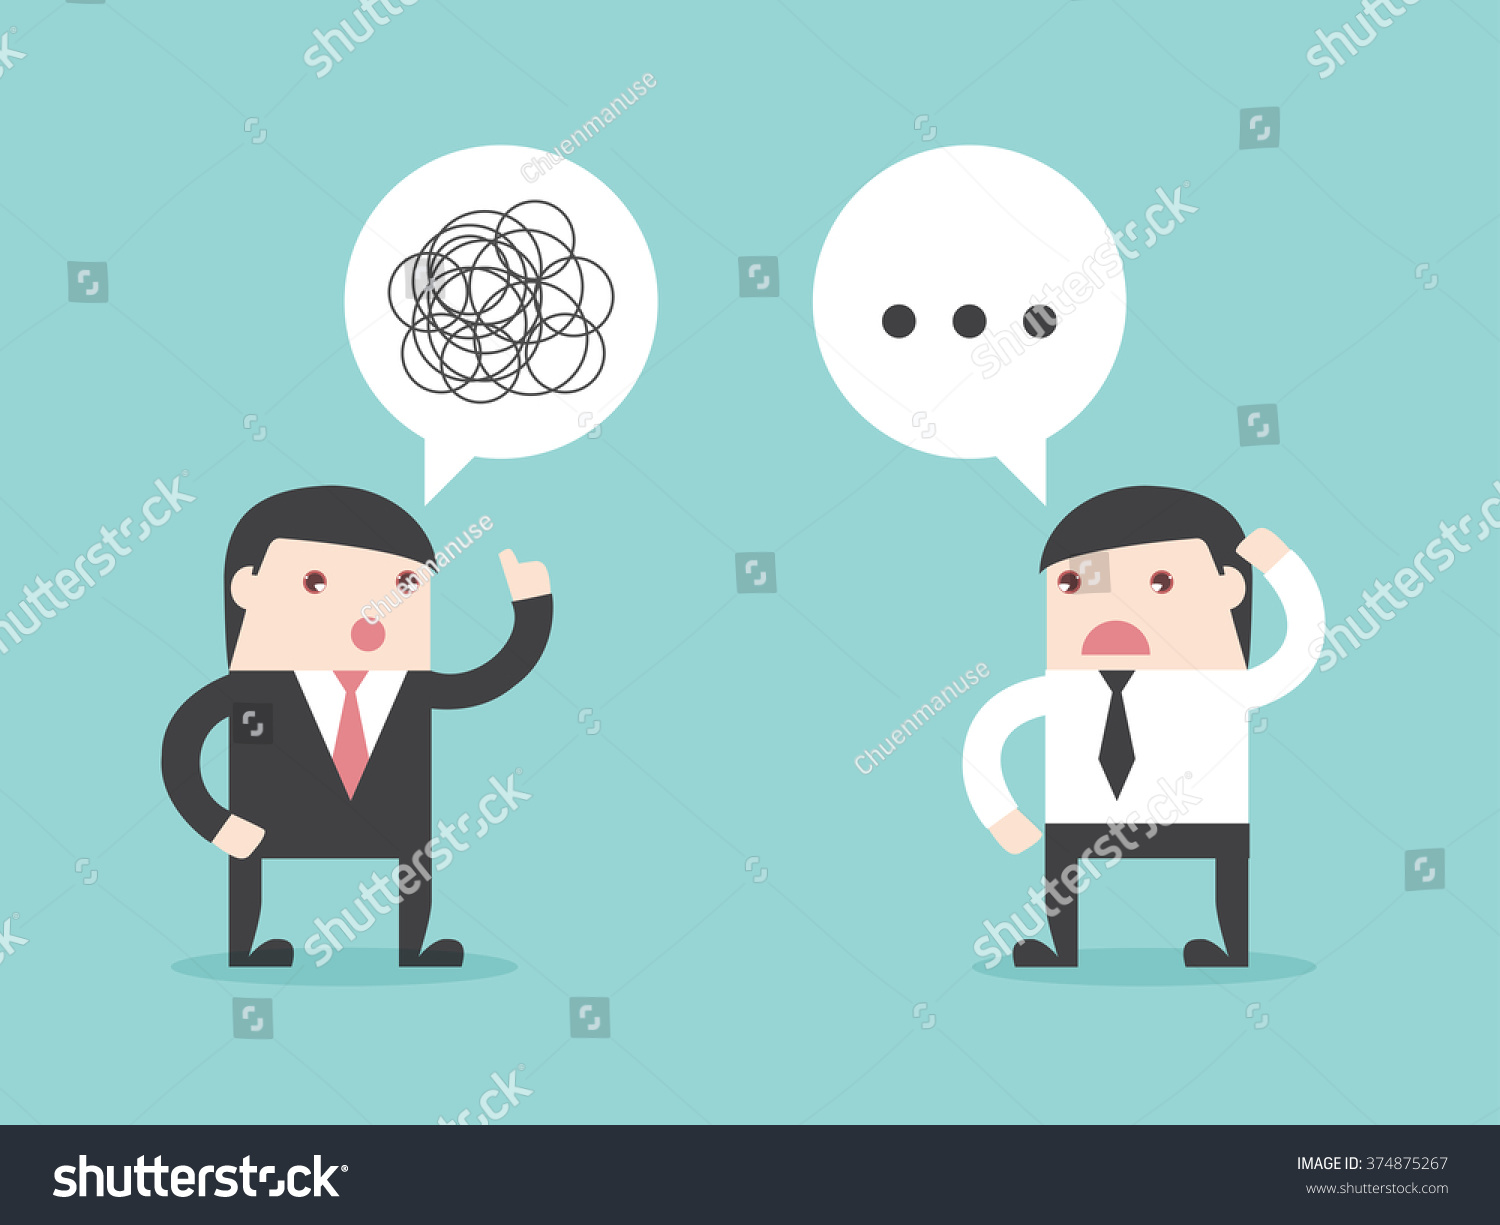 bad understanding of communication How to develop good communication skills having good communication skills is important they can help you with presentations in class, during job interviews, when handling arguments, and in a variety of other situations.